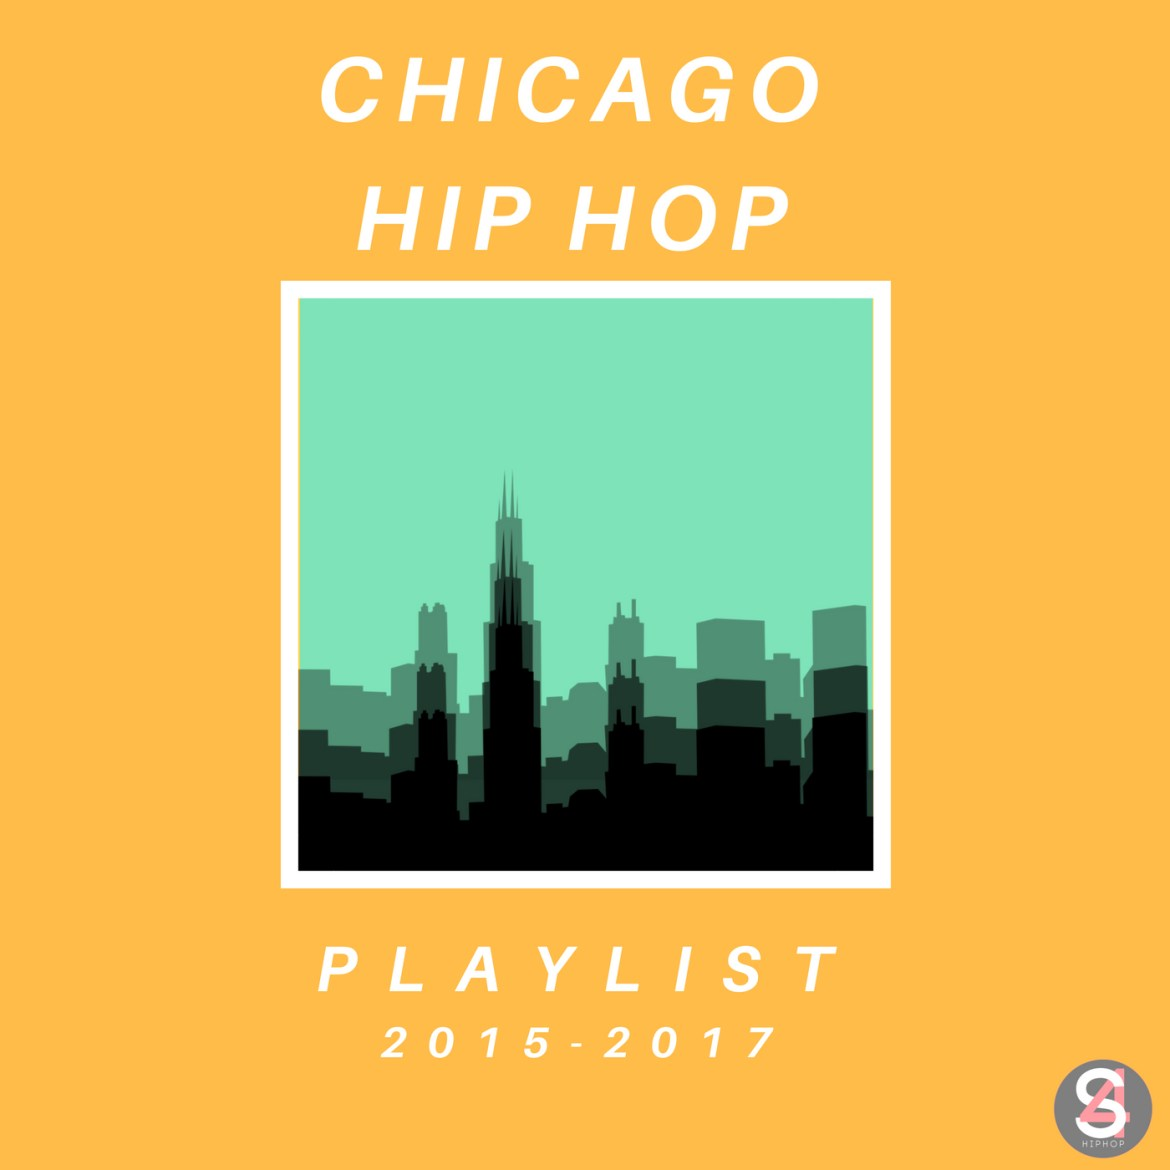 Chicago Hip Hop Playlist: 2015-2017; 6 Hours Of Chicago Hip Hop